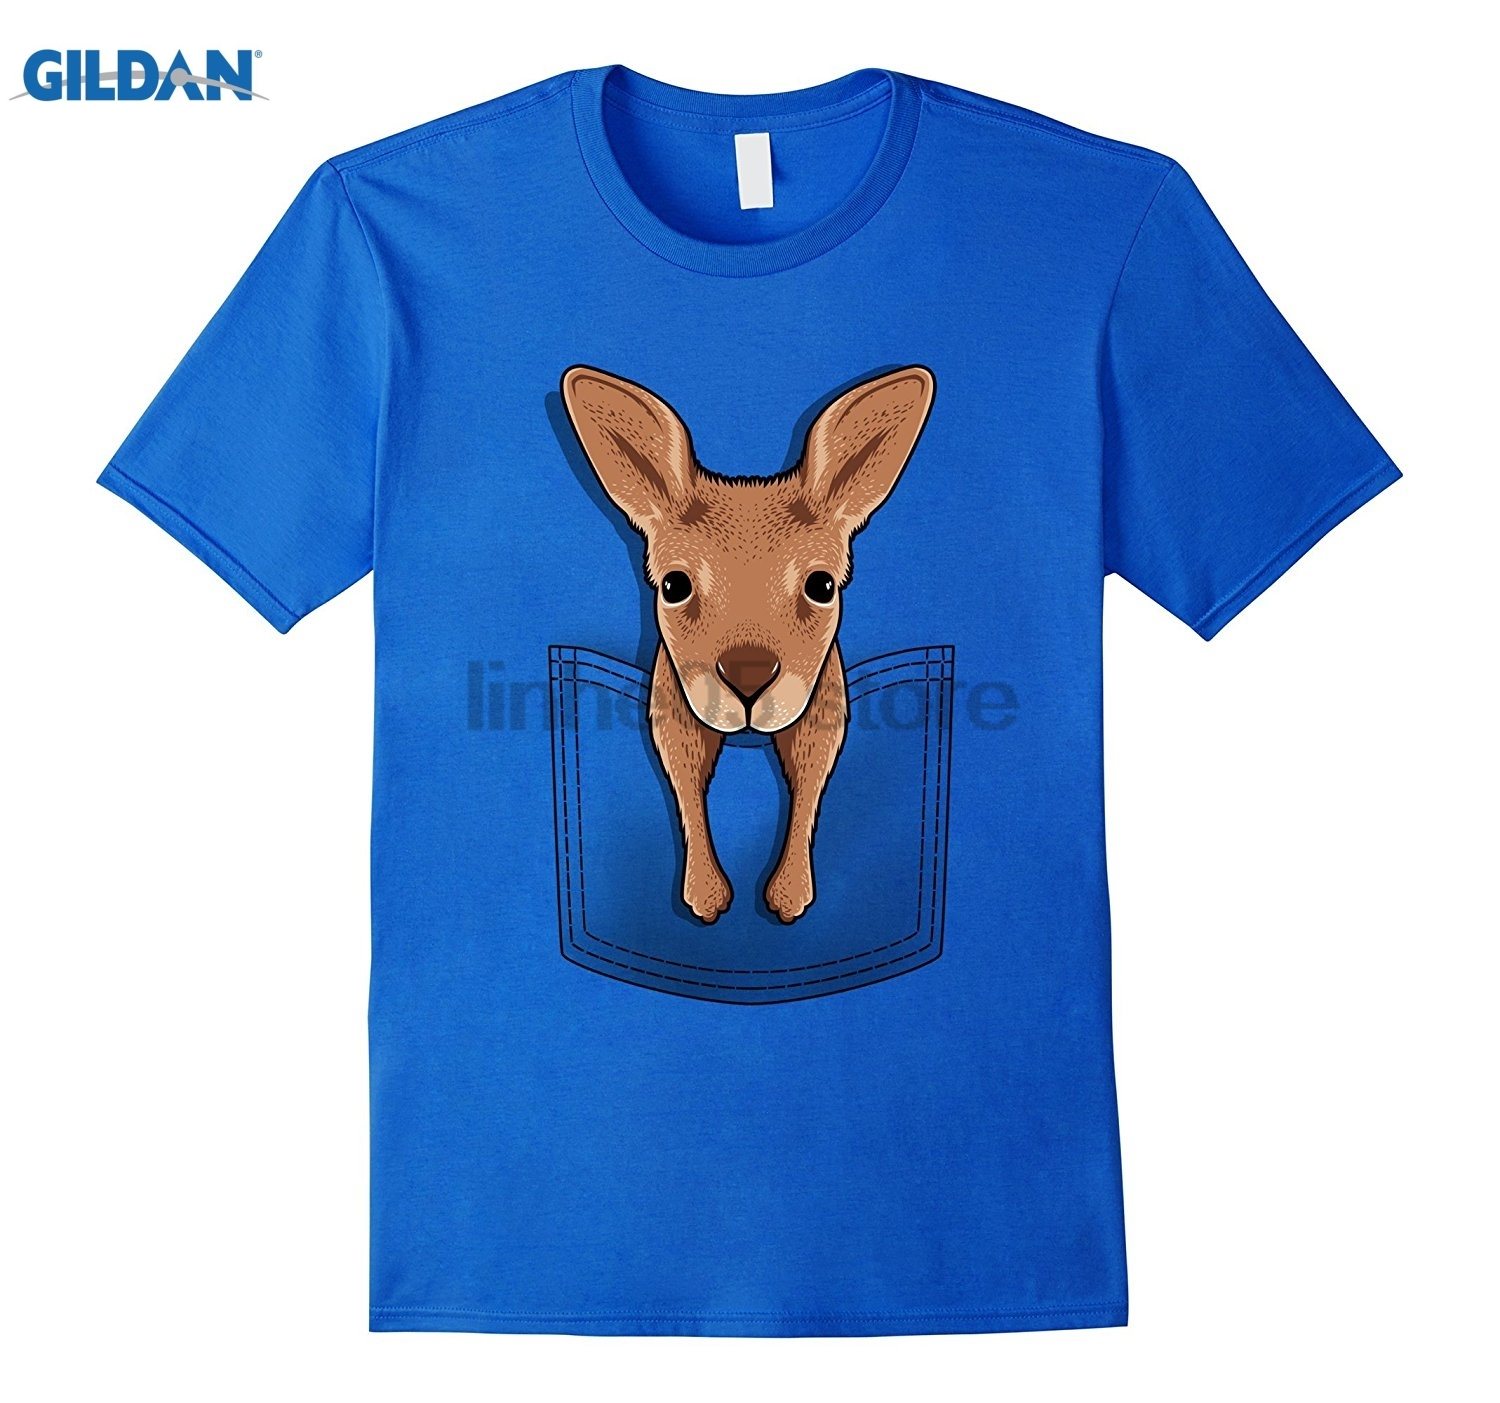 GILDAN Baby kangaroo in your pocket animal T-shirt sunglasses women T-shirt